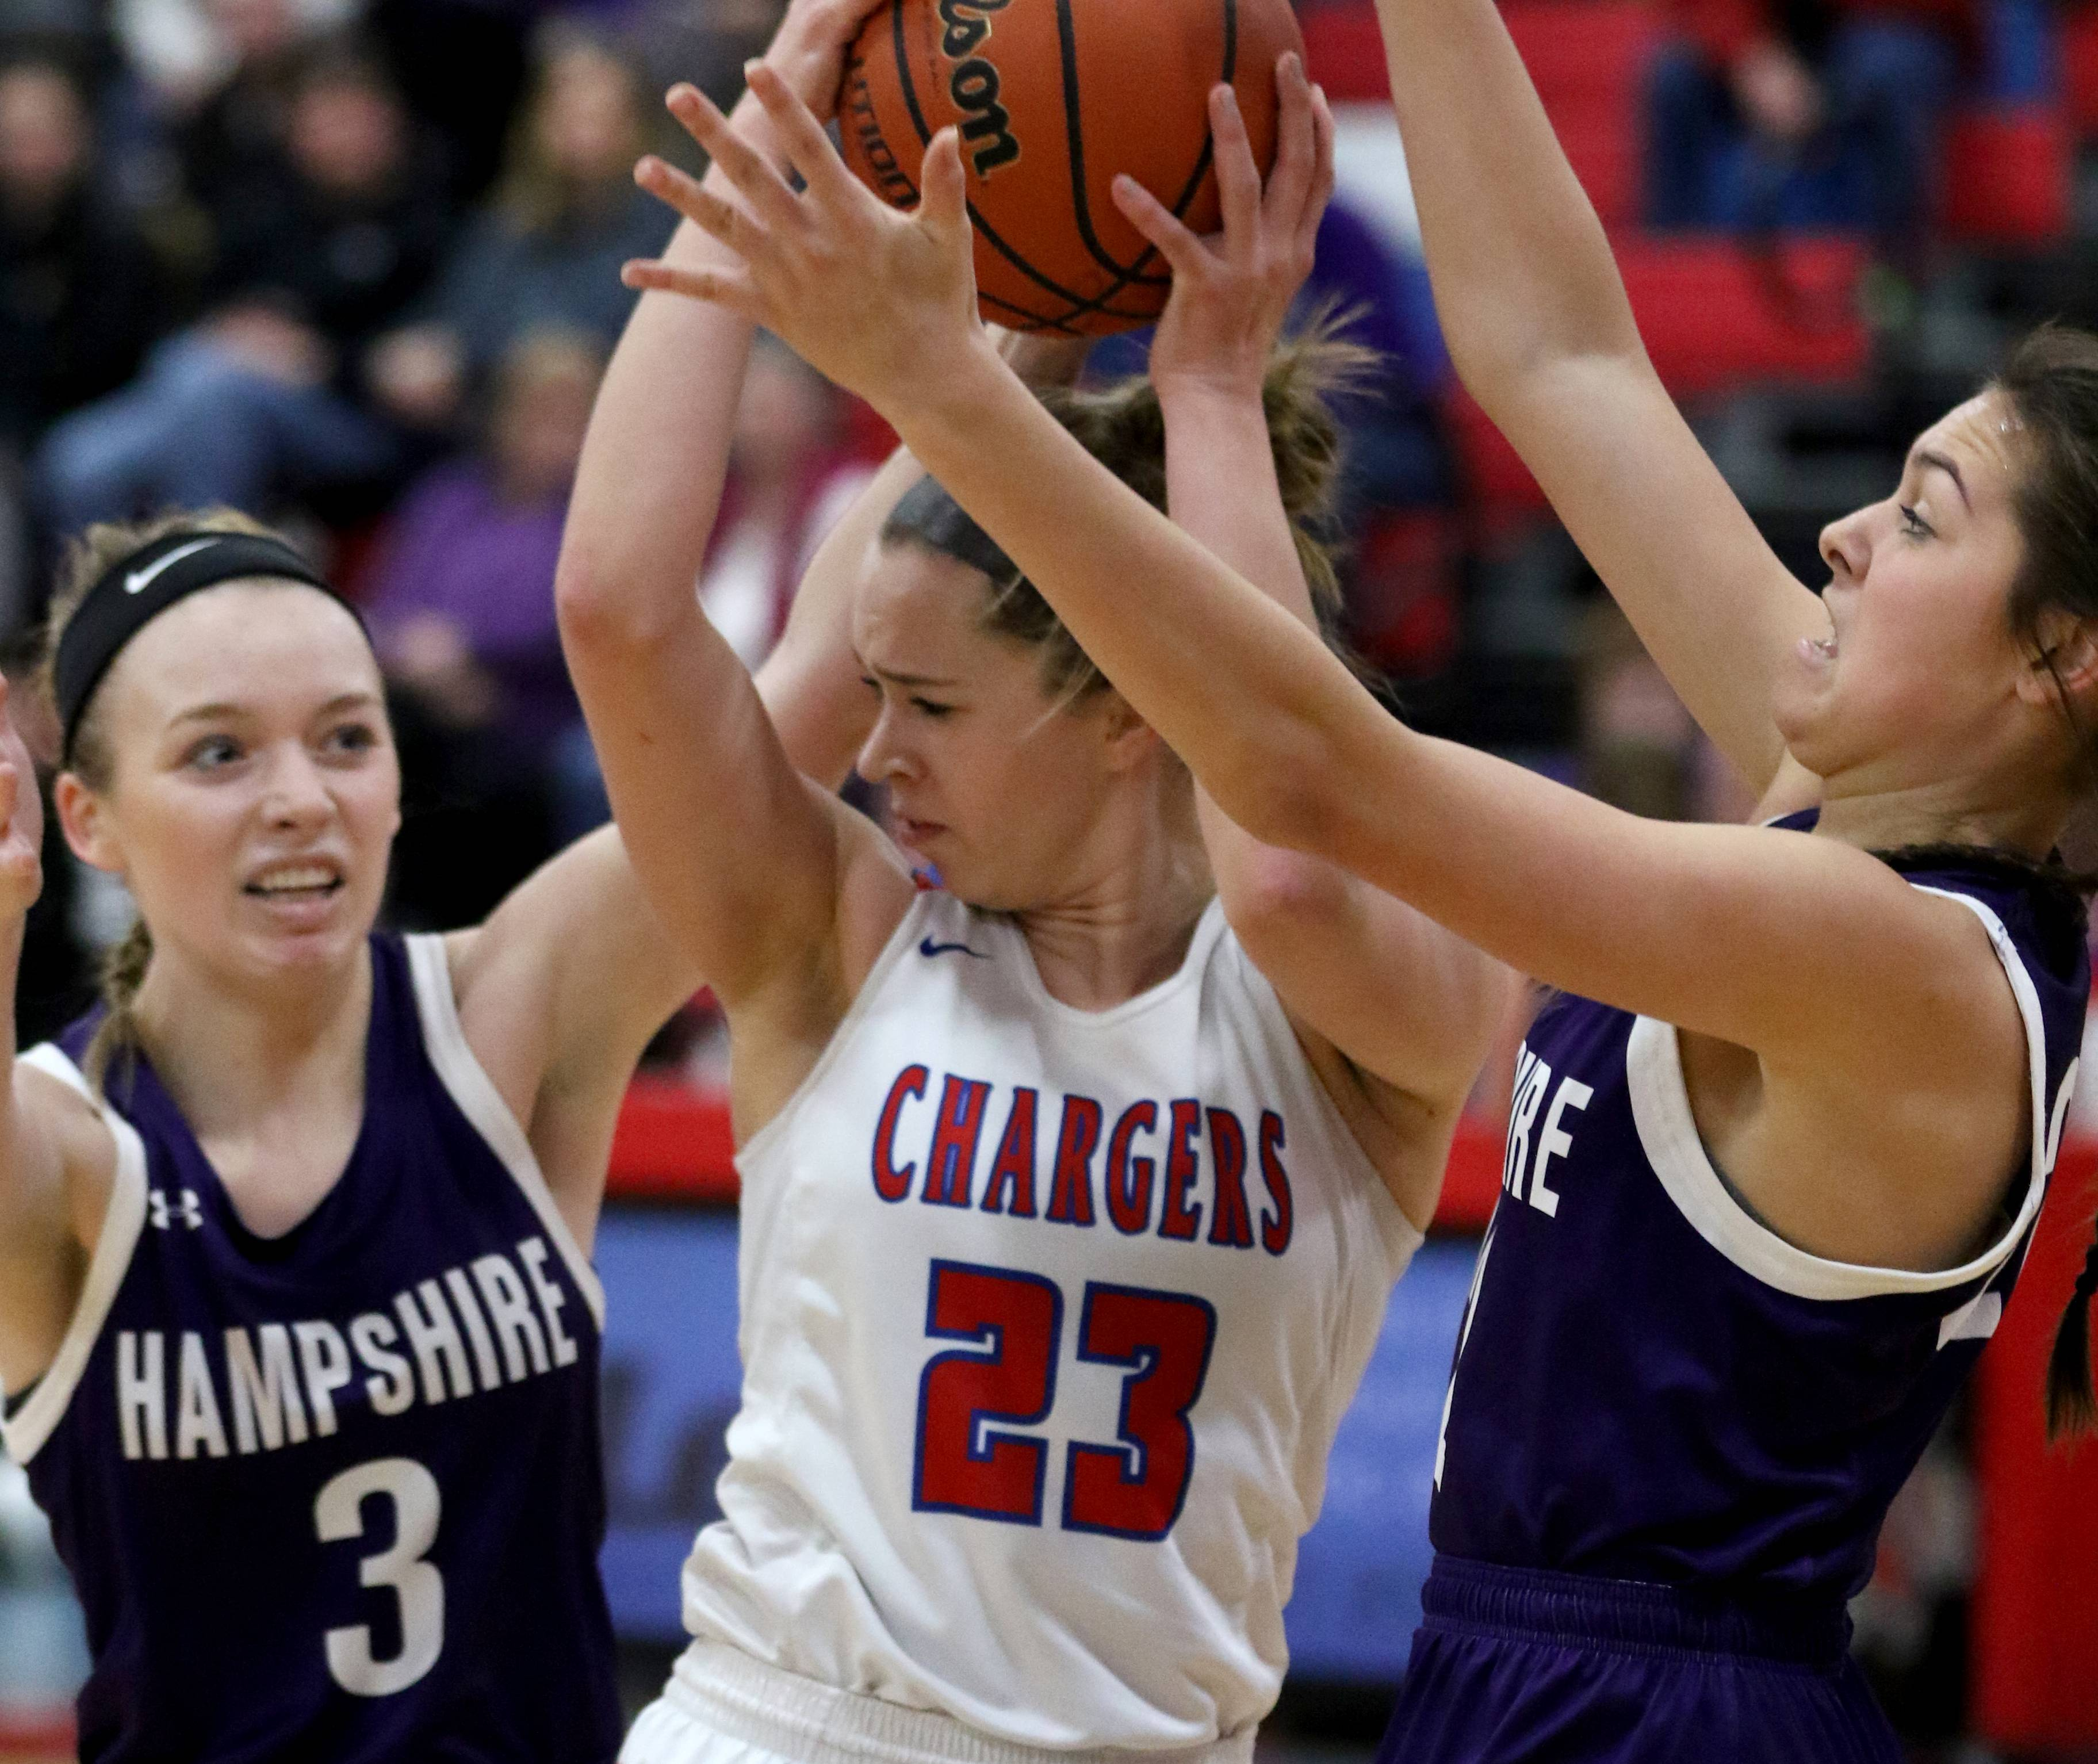 Hampshire's Ally Cermak, left, and Veronica Walker, right, swarm Dundee-Crown's Kendall Kieltyka during the Whip-Purs' win in Carpentersville Friday night.